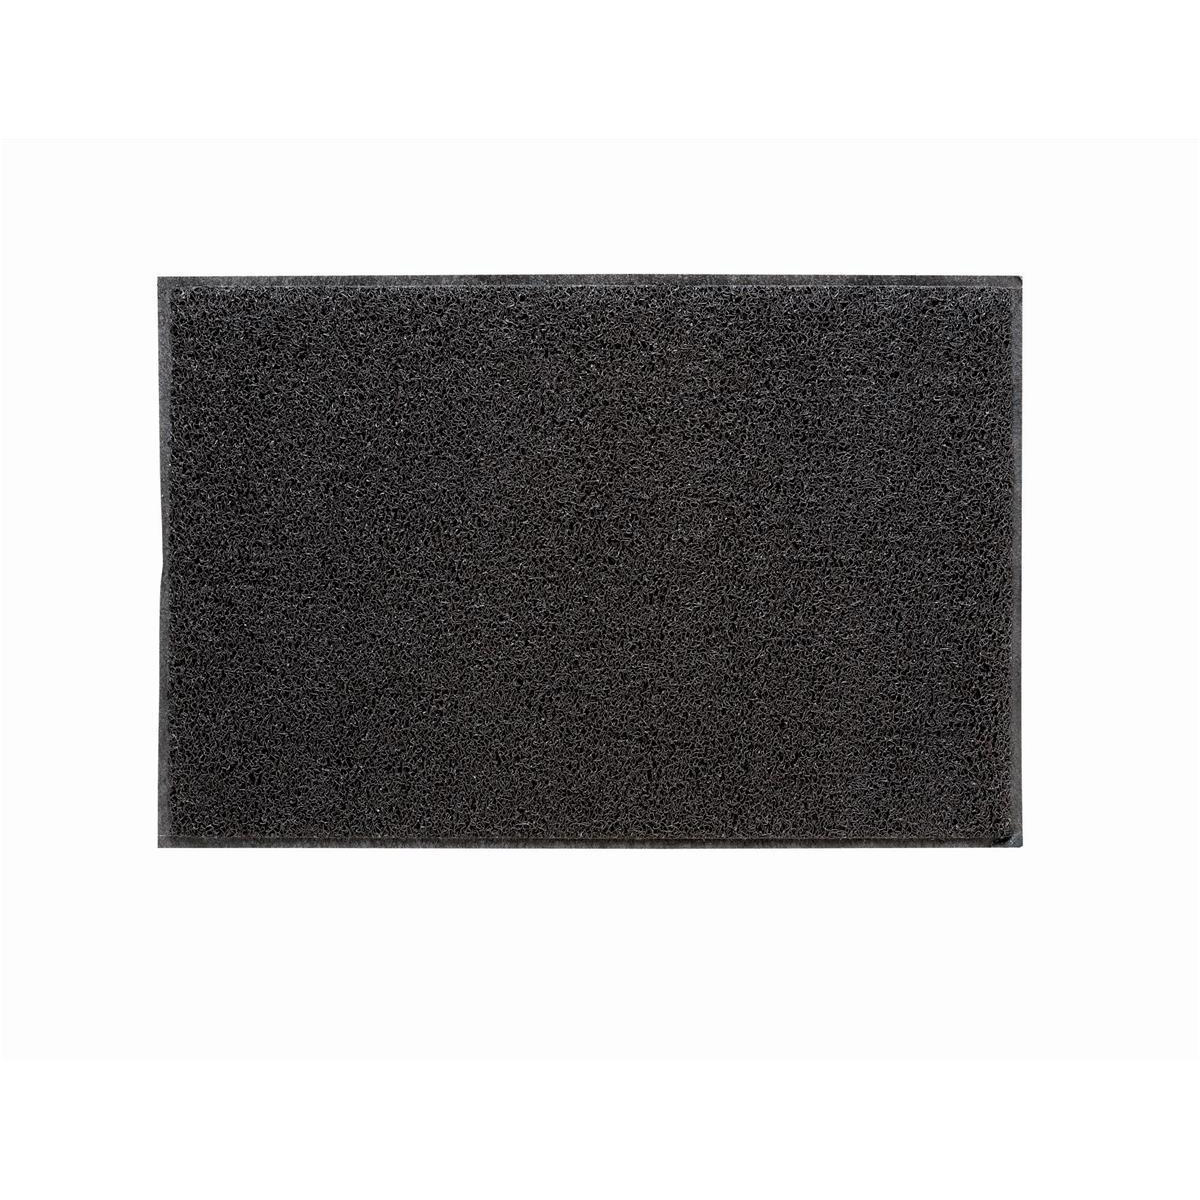 Doortex Twistermat Outdoor Mat Vinyl Fibre Surface Vinyl Back 600x900mm Storm Grey Ref FC46090TWISG